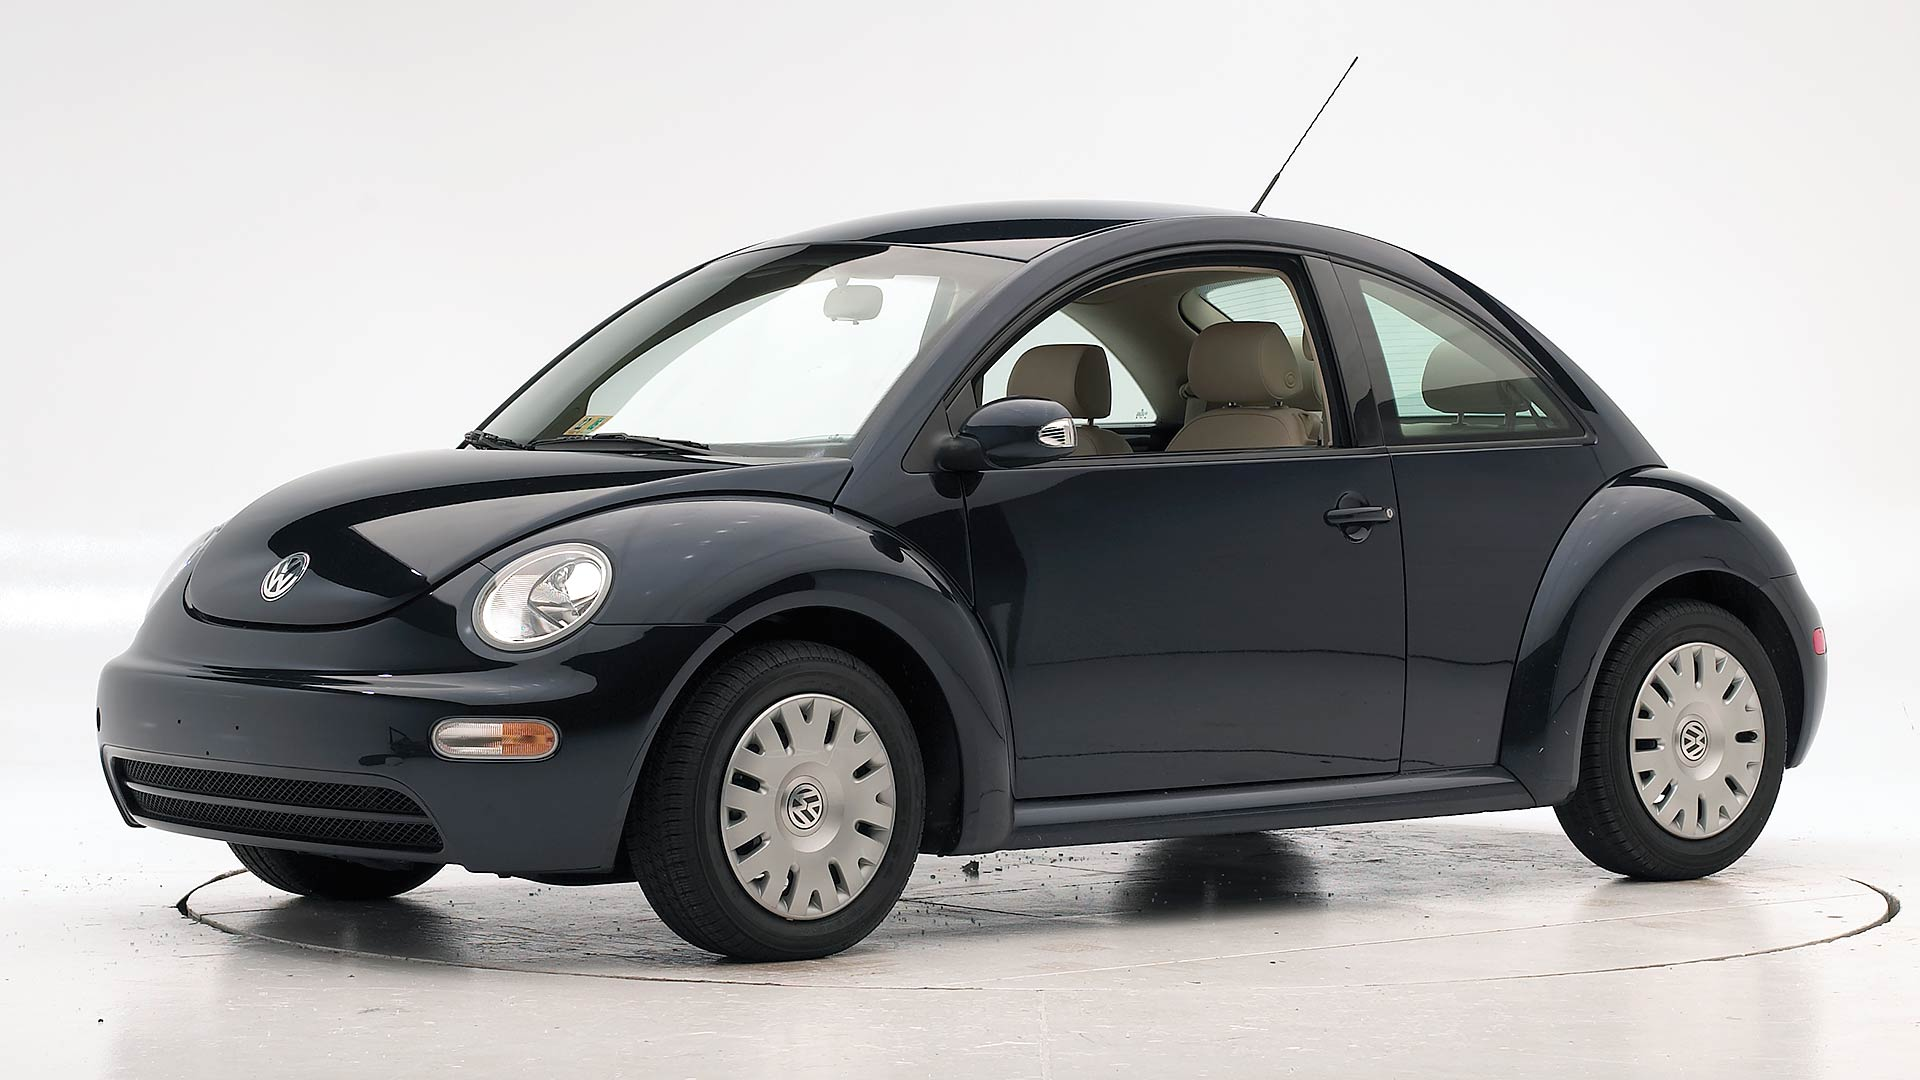 2010 Volkswagen New Beetle 2-door hatchback